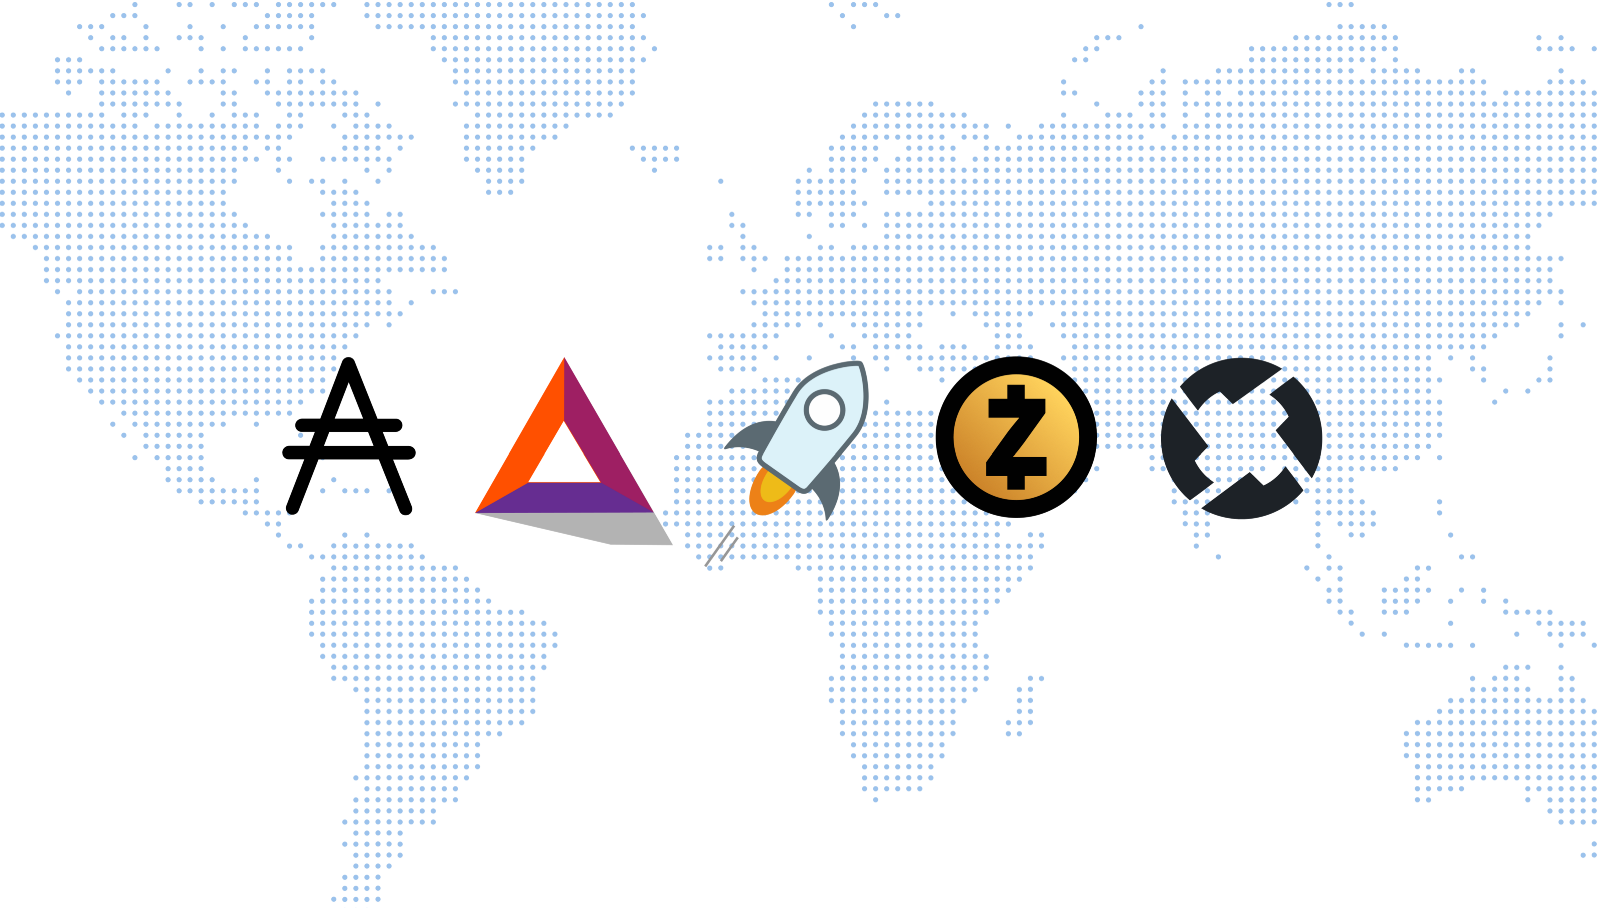 Coinbase Might Be Adding Cardano (ADA), Basic Attention Token (BAT), Stellar (XLM), Zcash (ZEC), and/or 0x (ZRX)